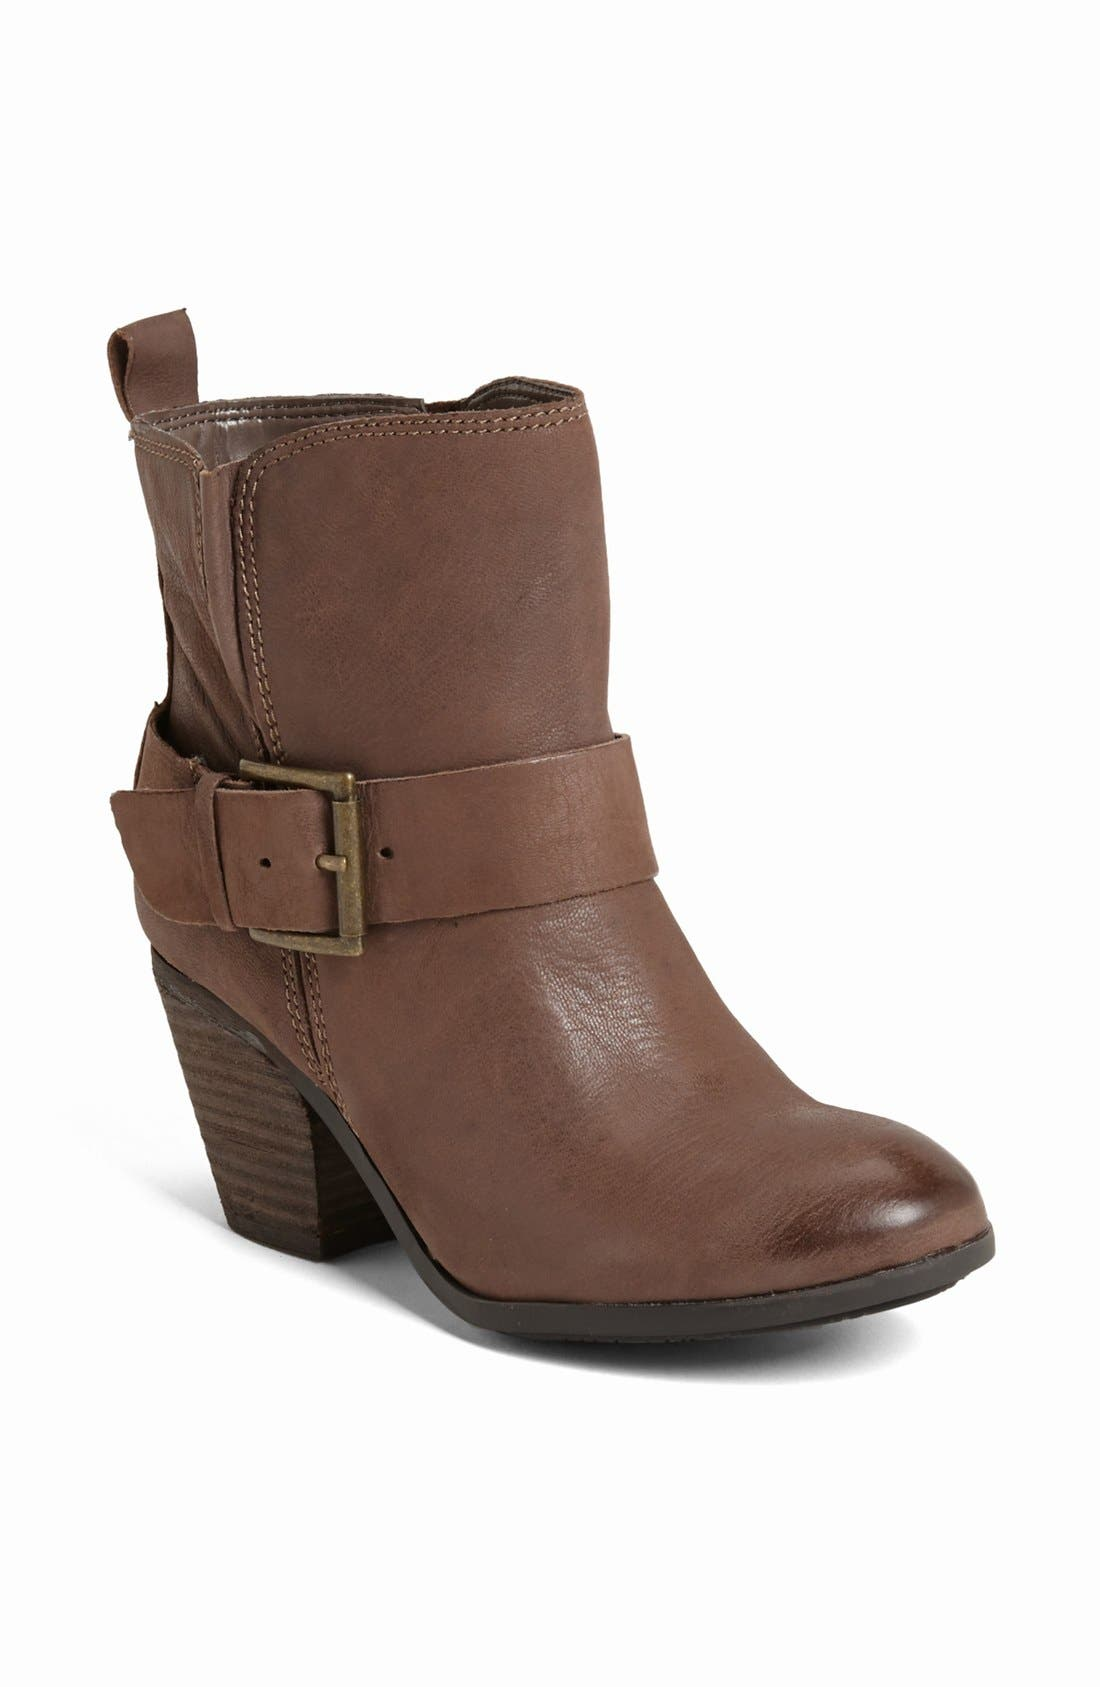 Alternate Image 1 Selected - Fergie 'Country Too' Boot